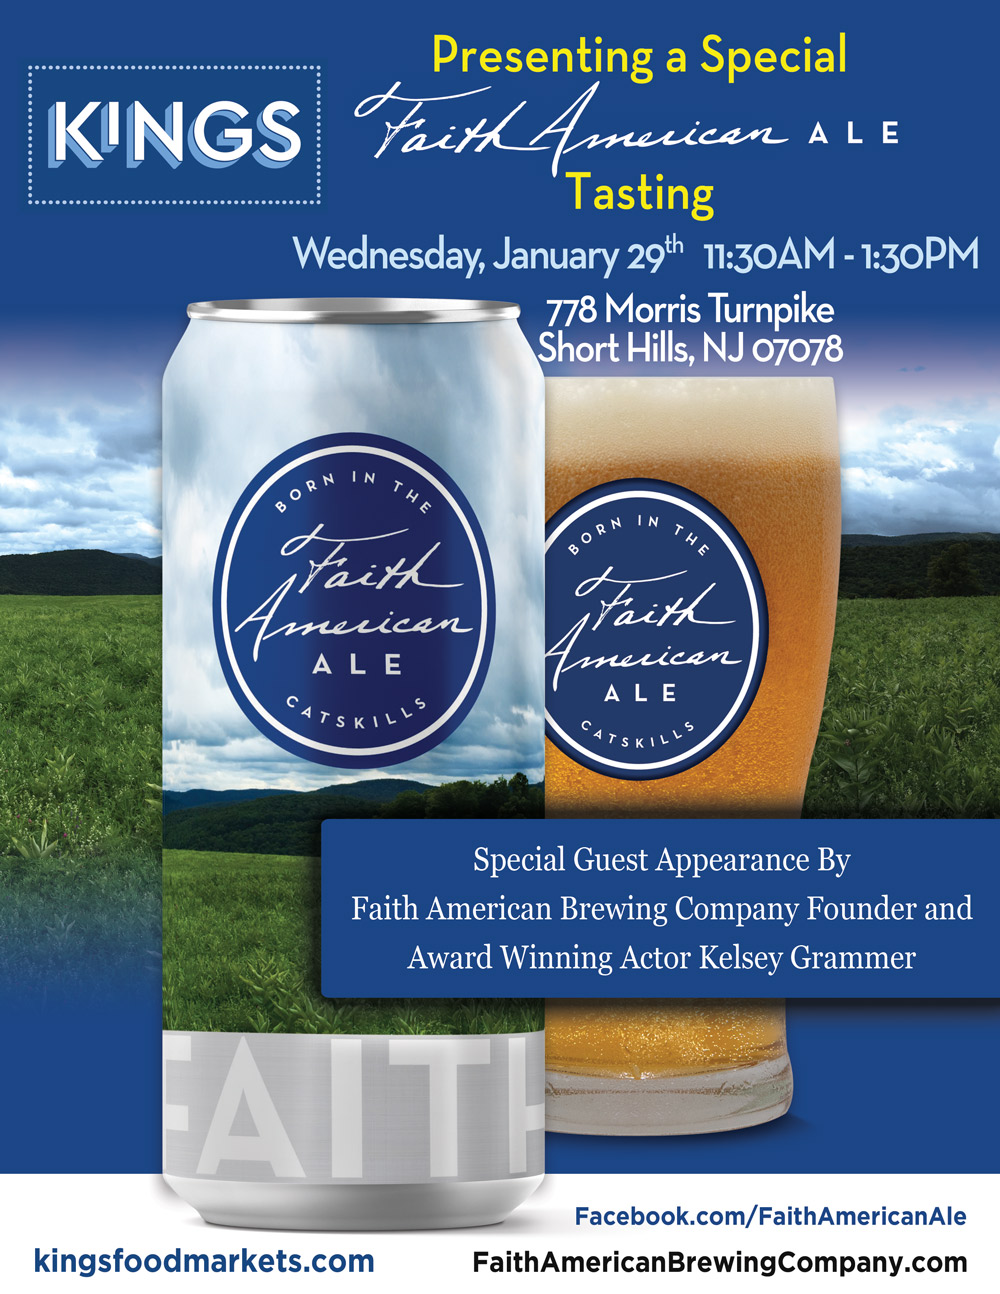 A Special Faith American Ale Tasting Event at Kings Food Market